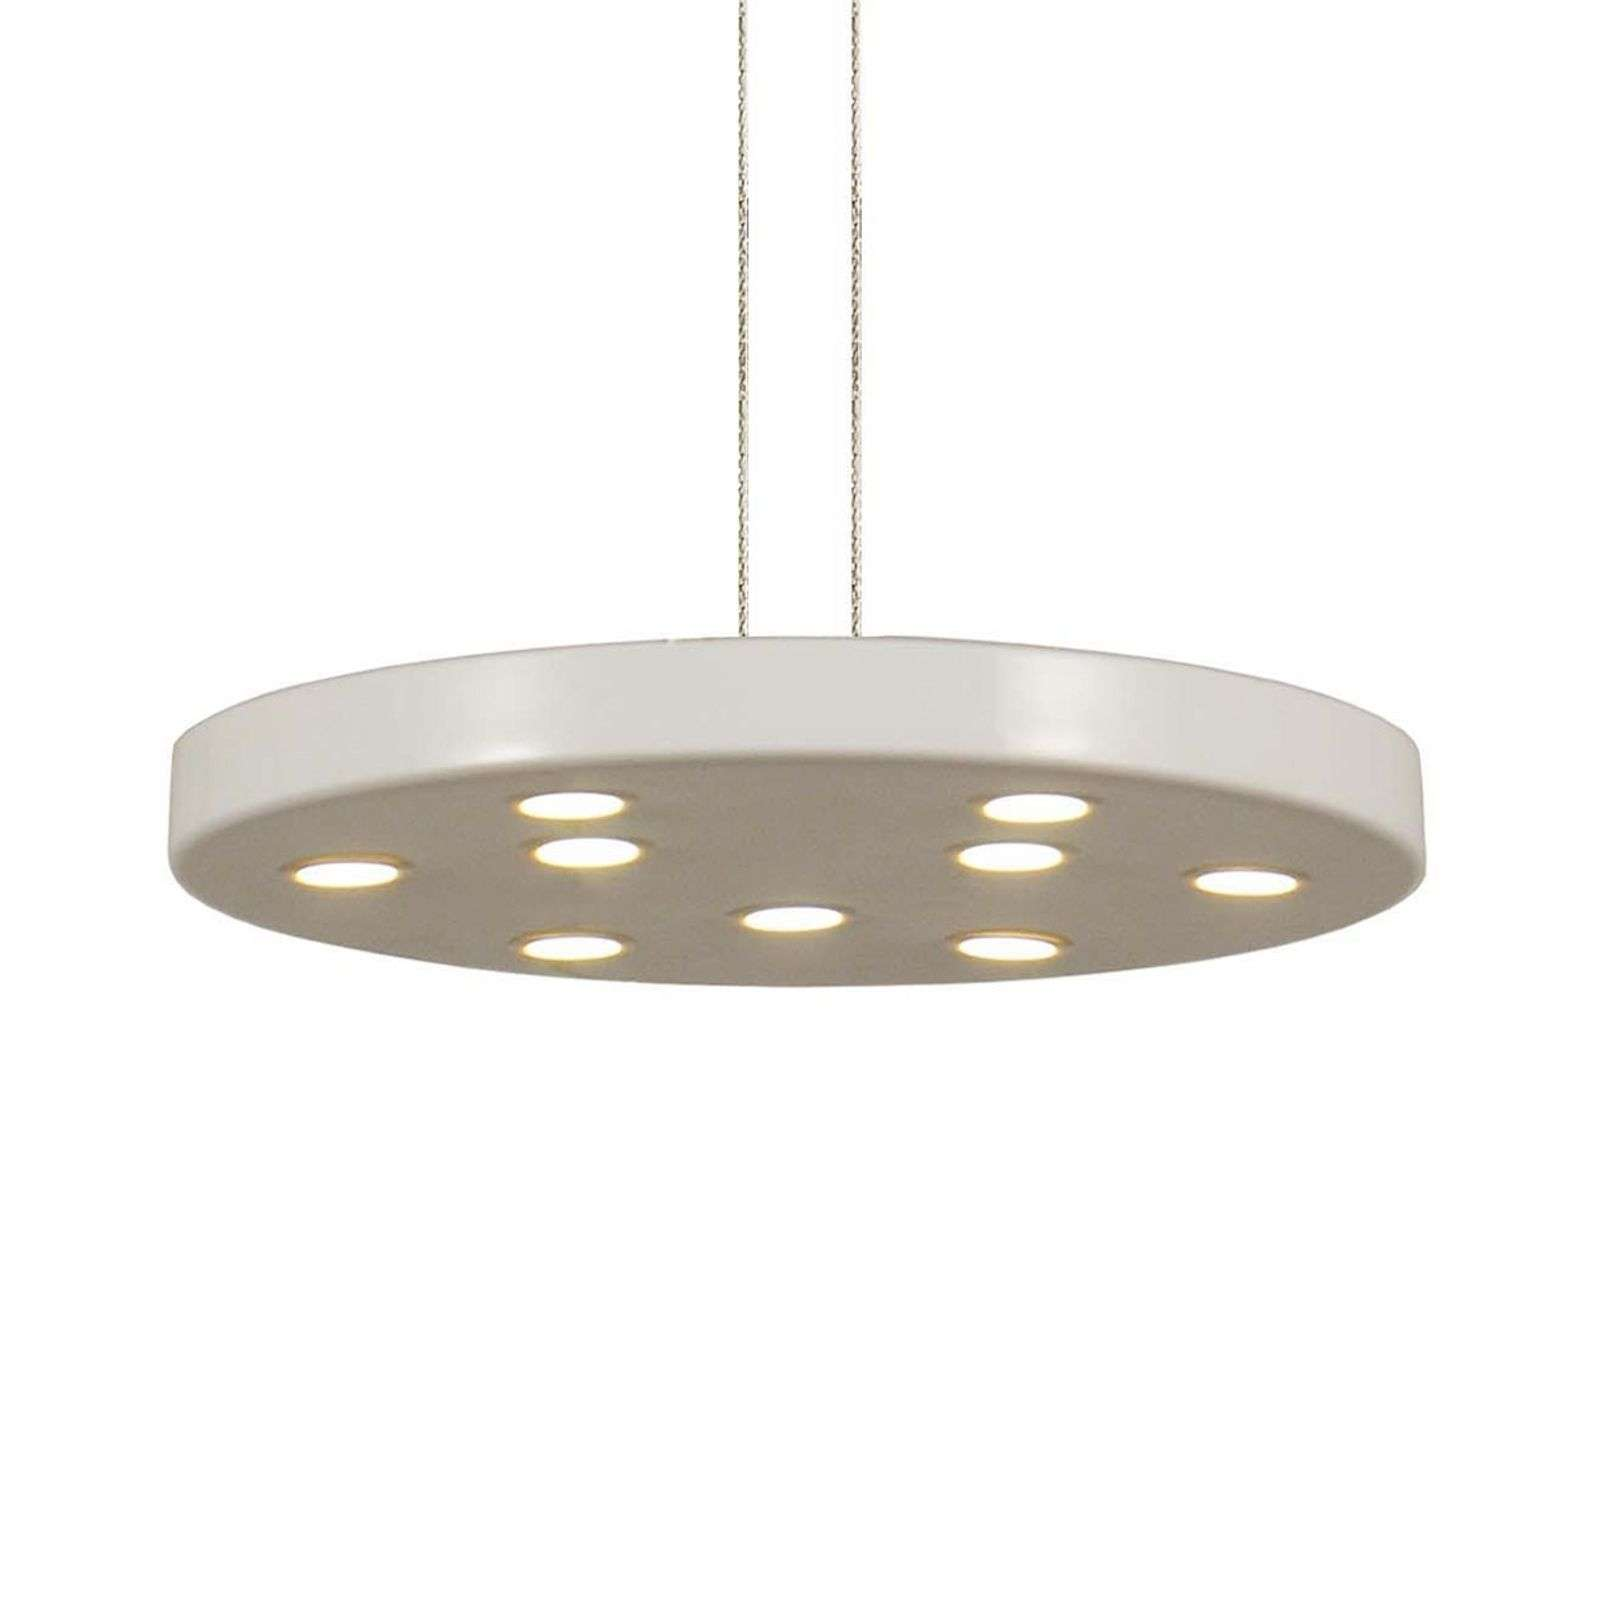 Suspension LED mondaine Plain 18